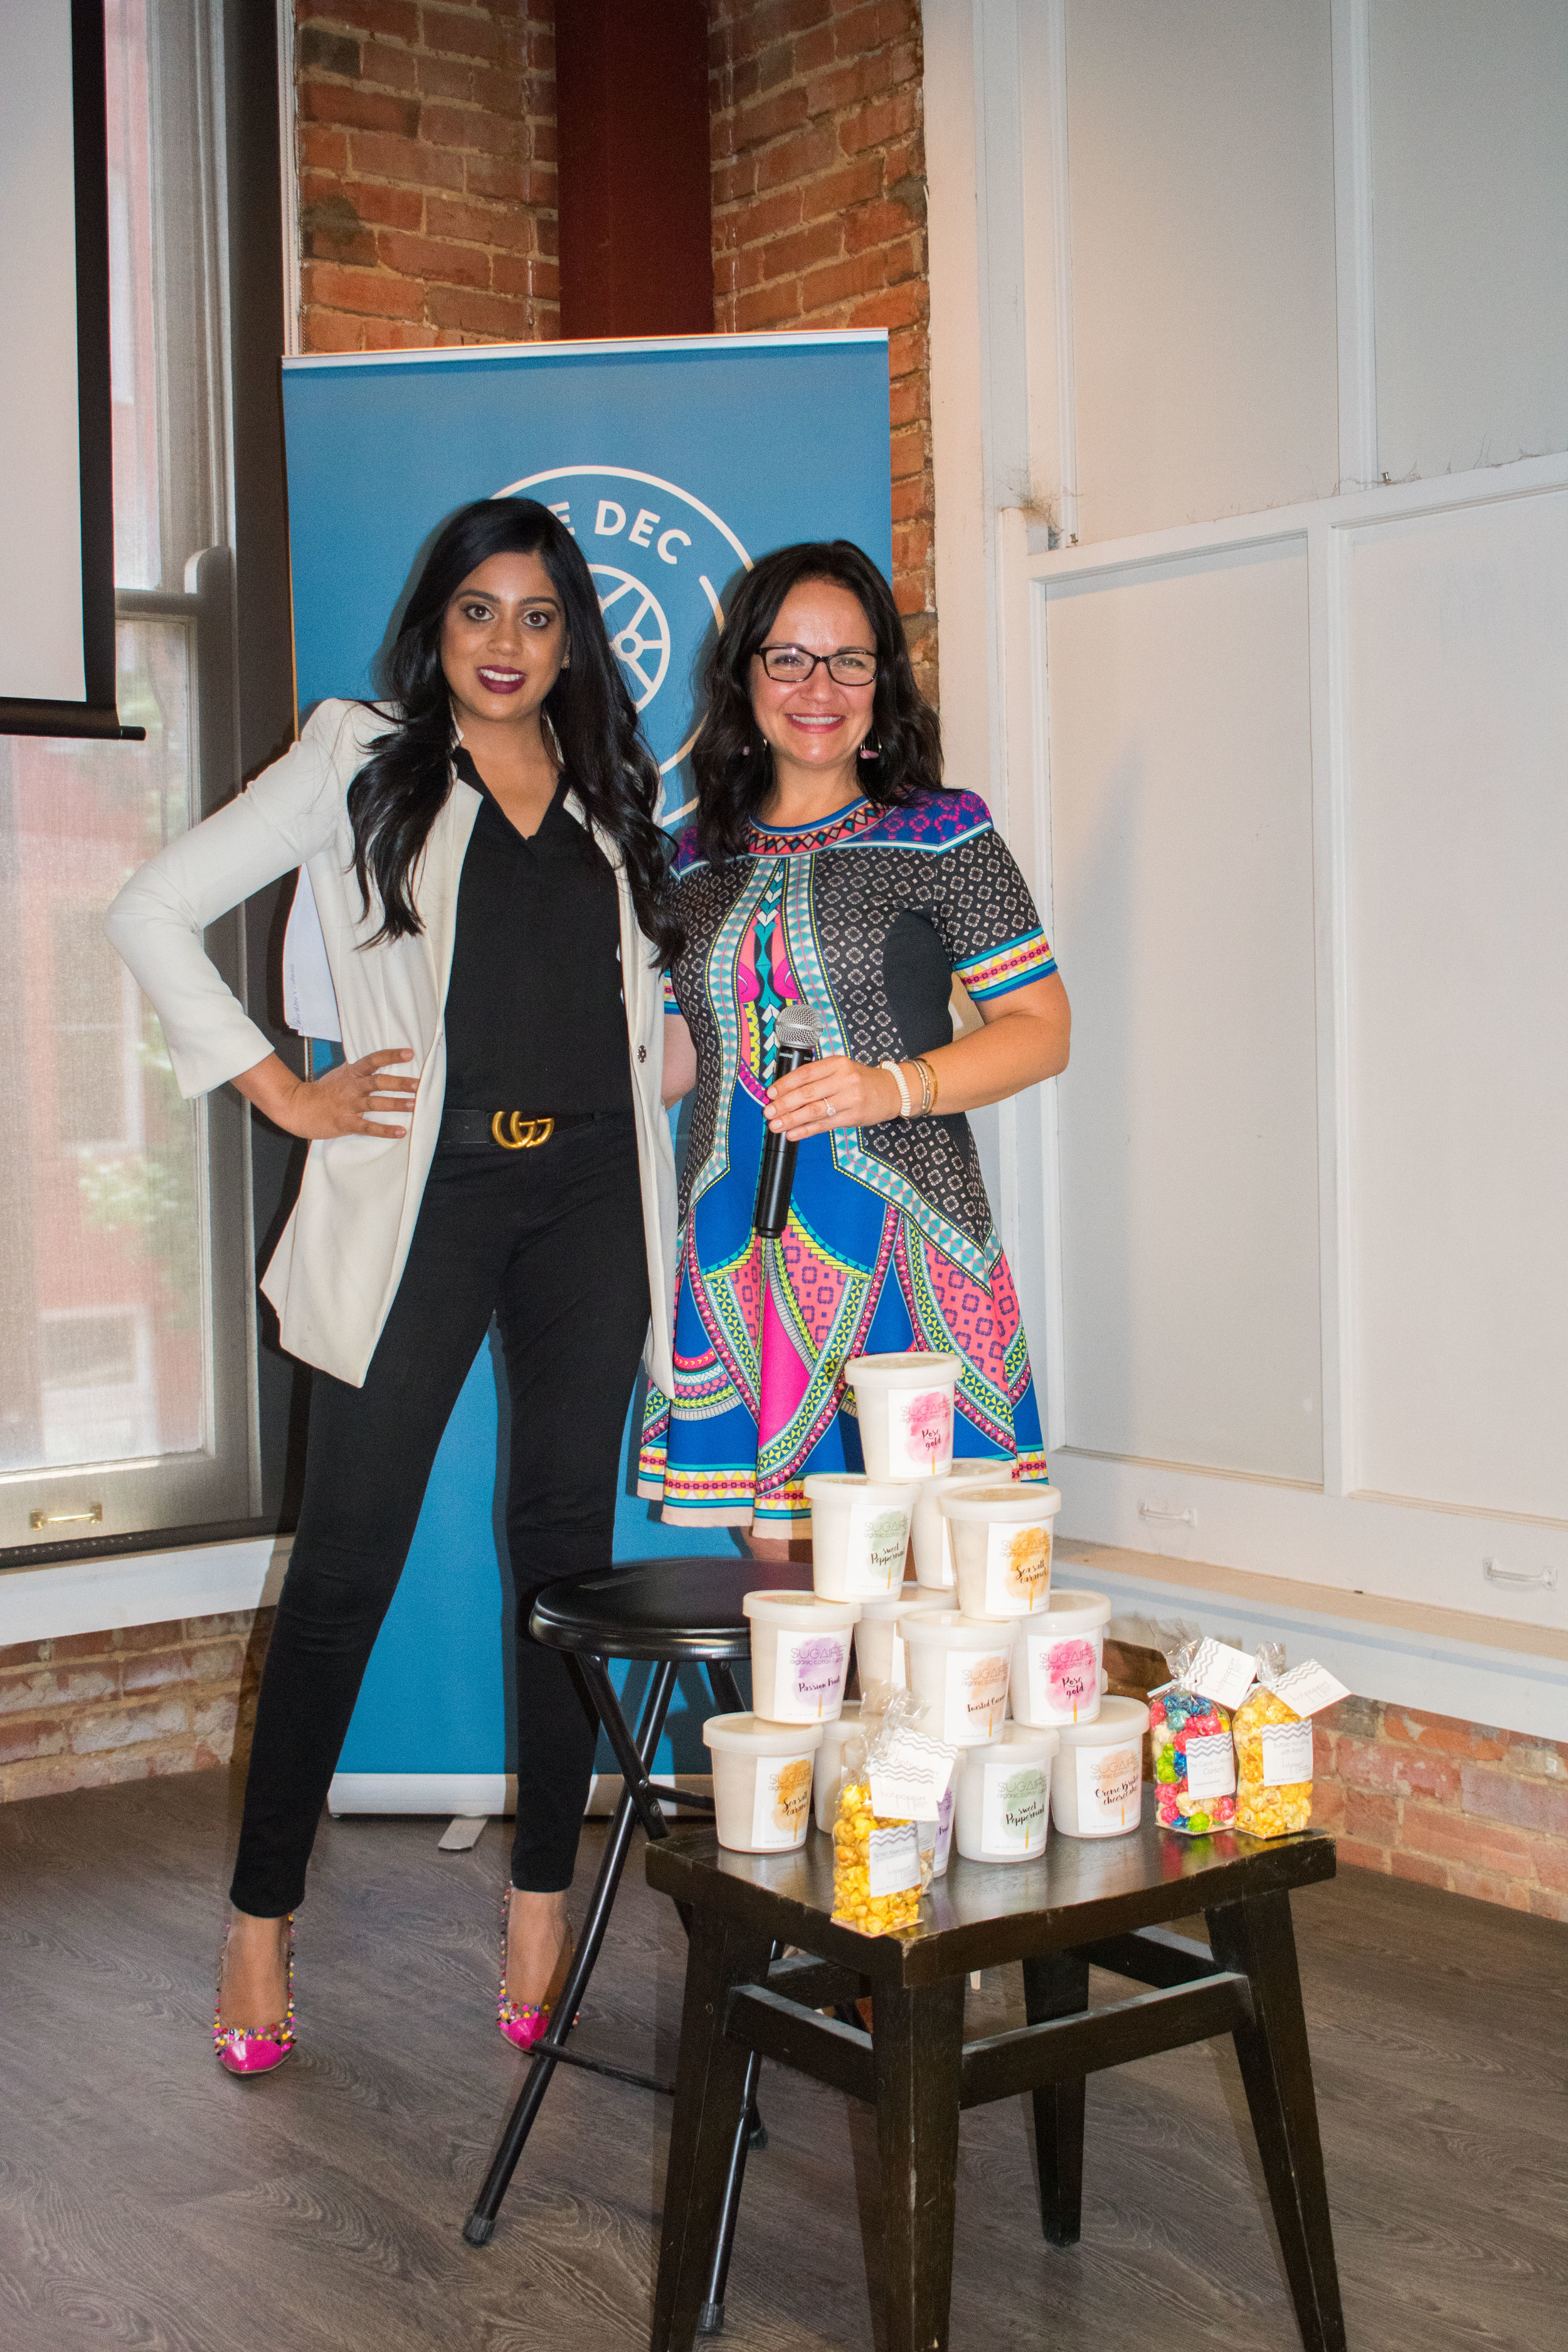 Yasmeen Tadia Events- WeDallas DEC Mompreneur Brunch